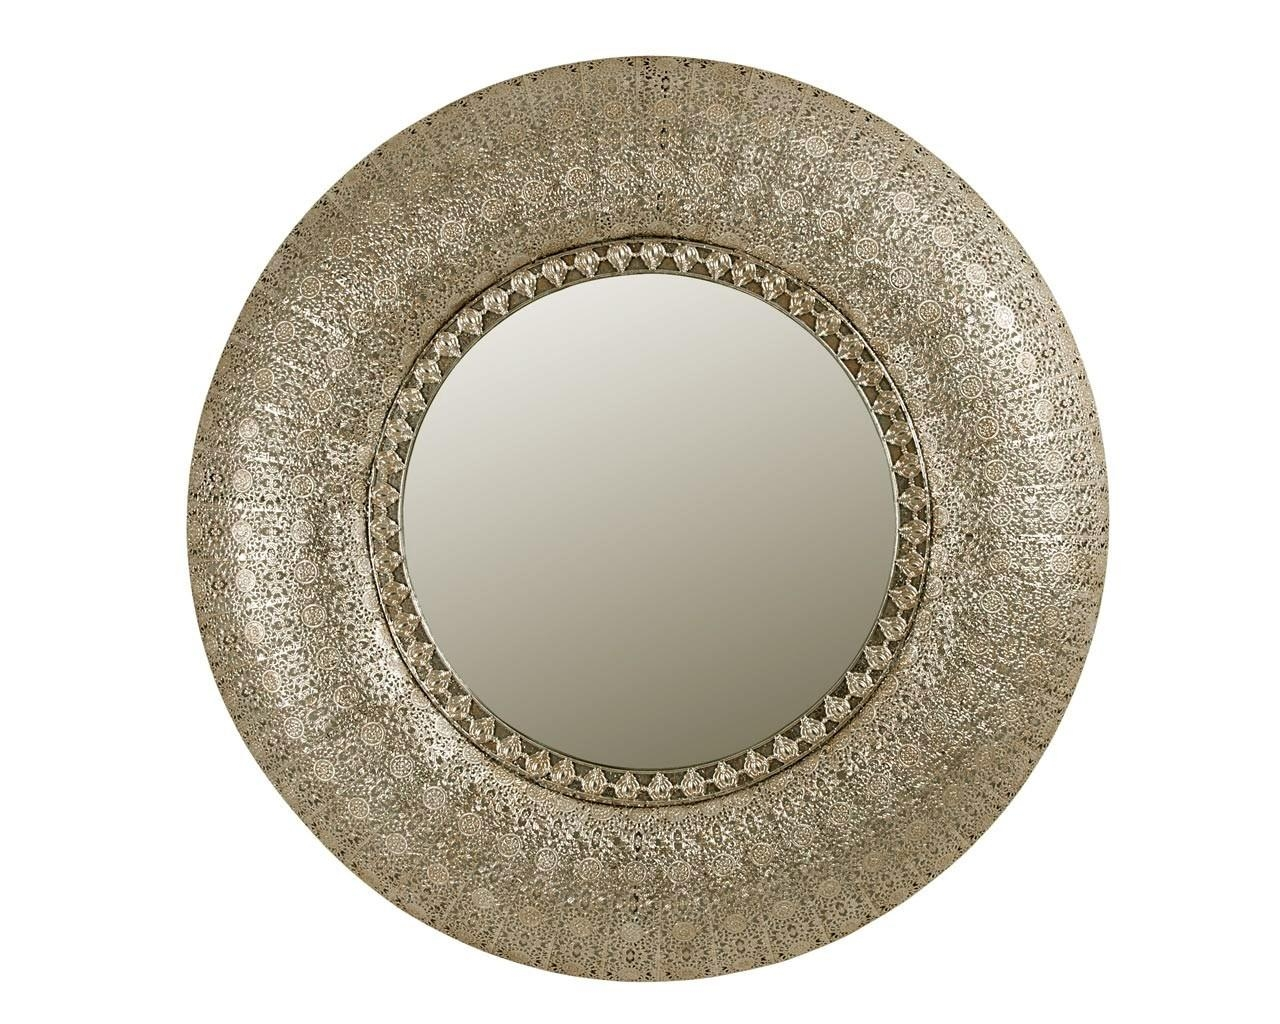 Decor: Antique Round Mirror Iron Mirror With Convex Wall Mirror With Regard To Antique Round Mirror (Image 5 of 20)